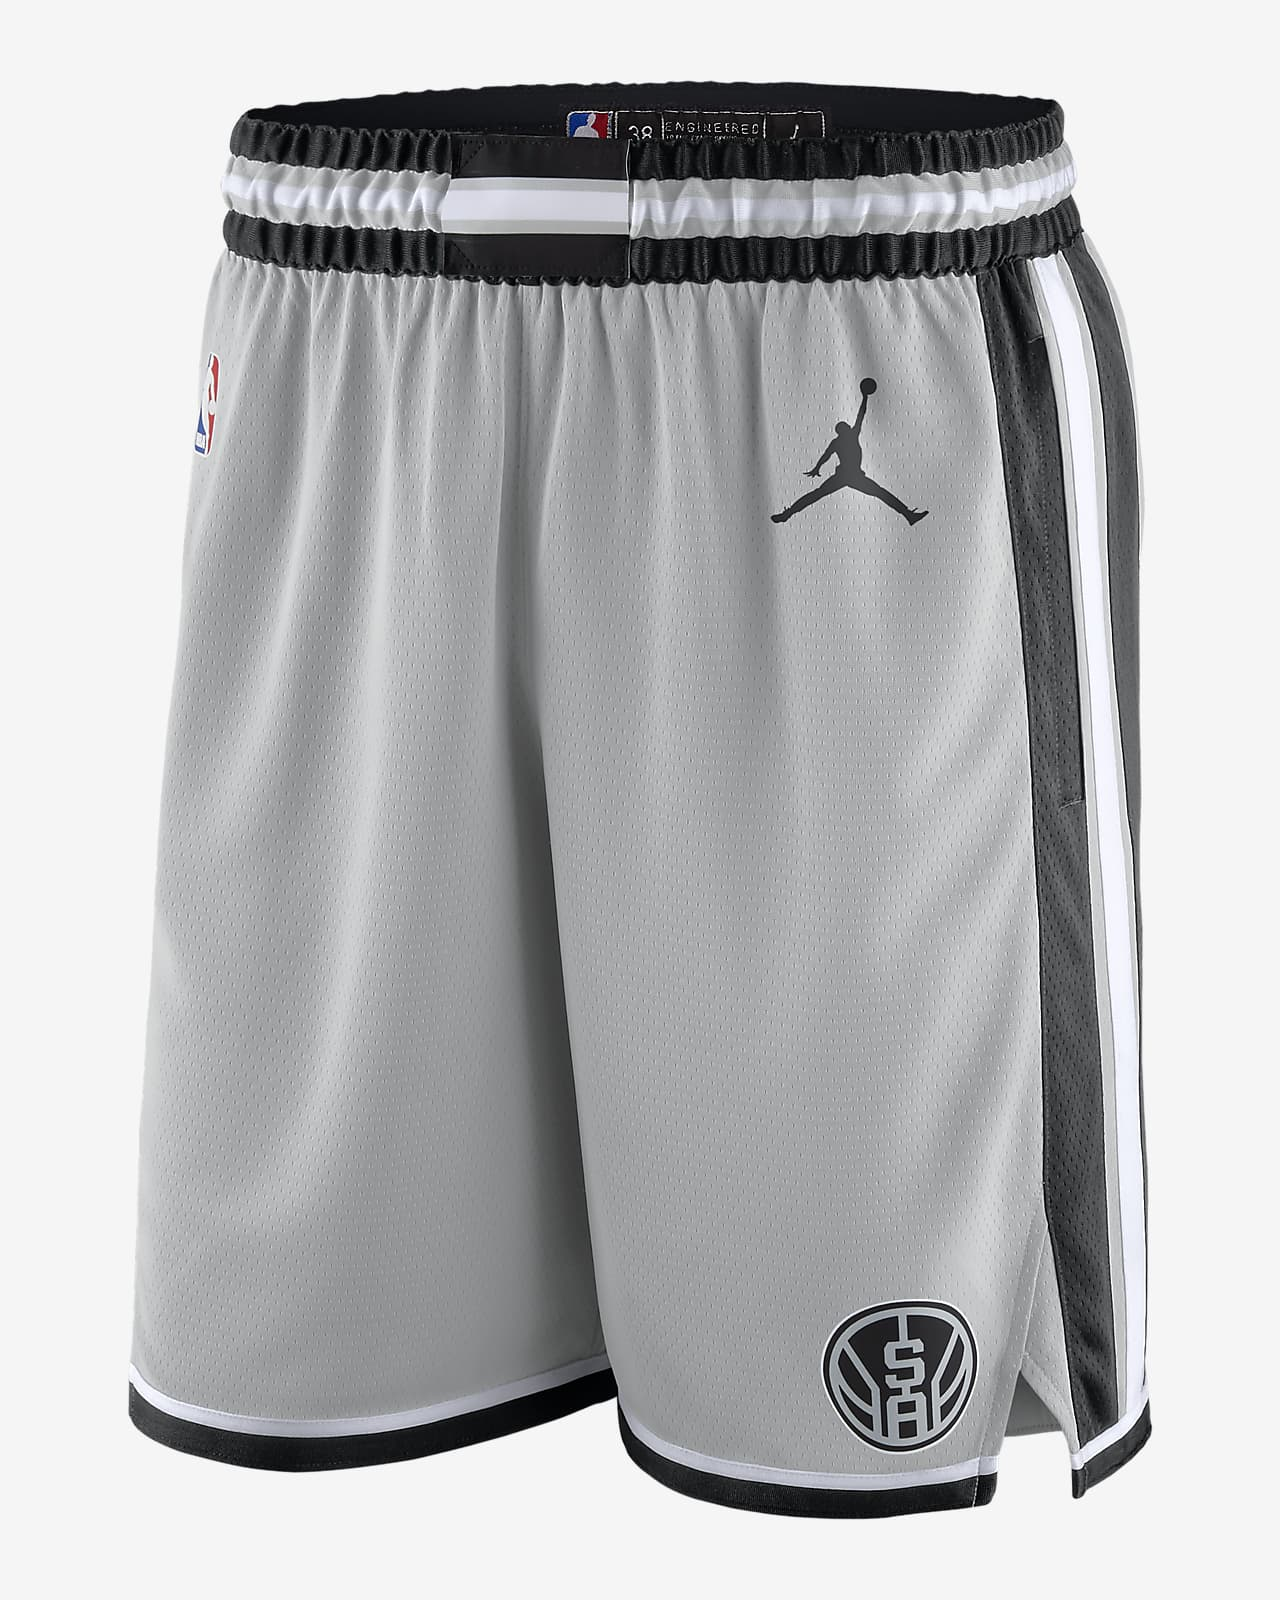 Spurs Statement Edition 2020 Men's Jordan NBA Swingman Shorts